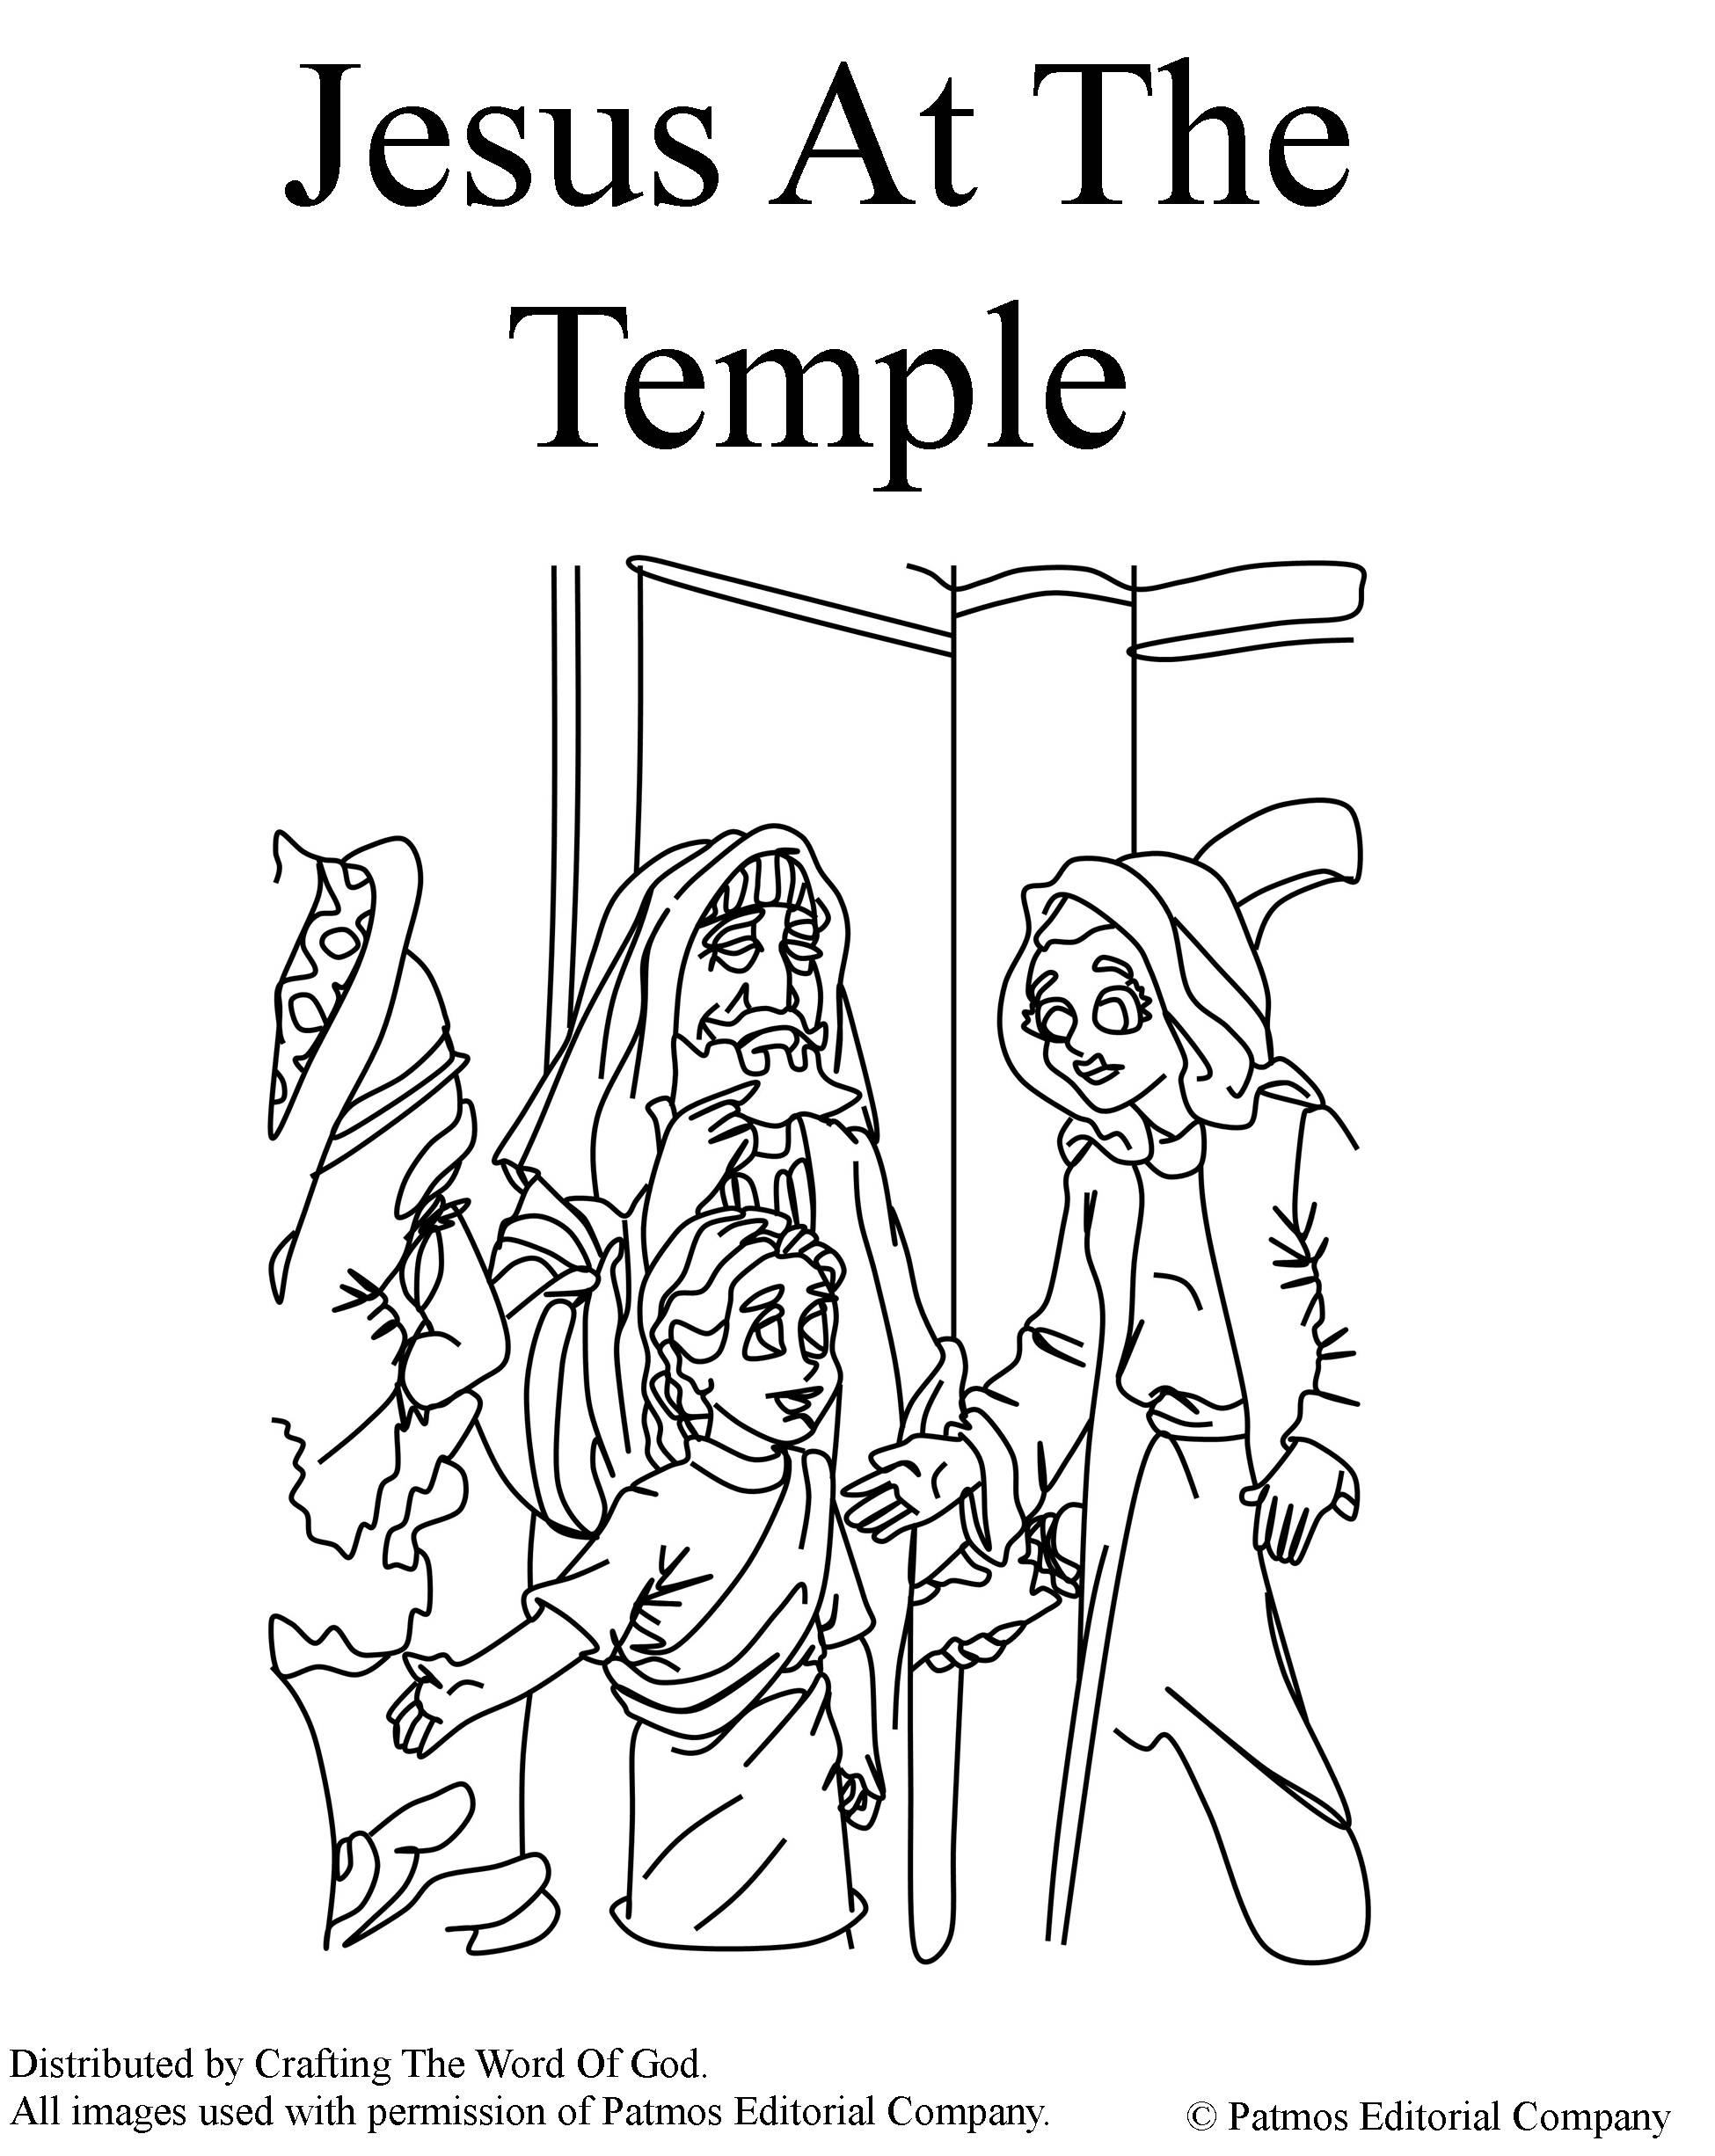 Jesus At The Temple- Coloring Page « Crafting The Word Of God